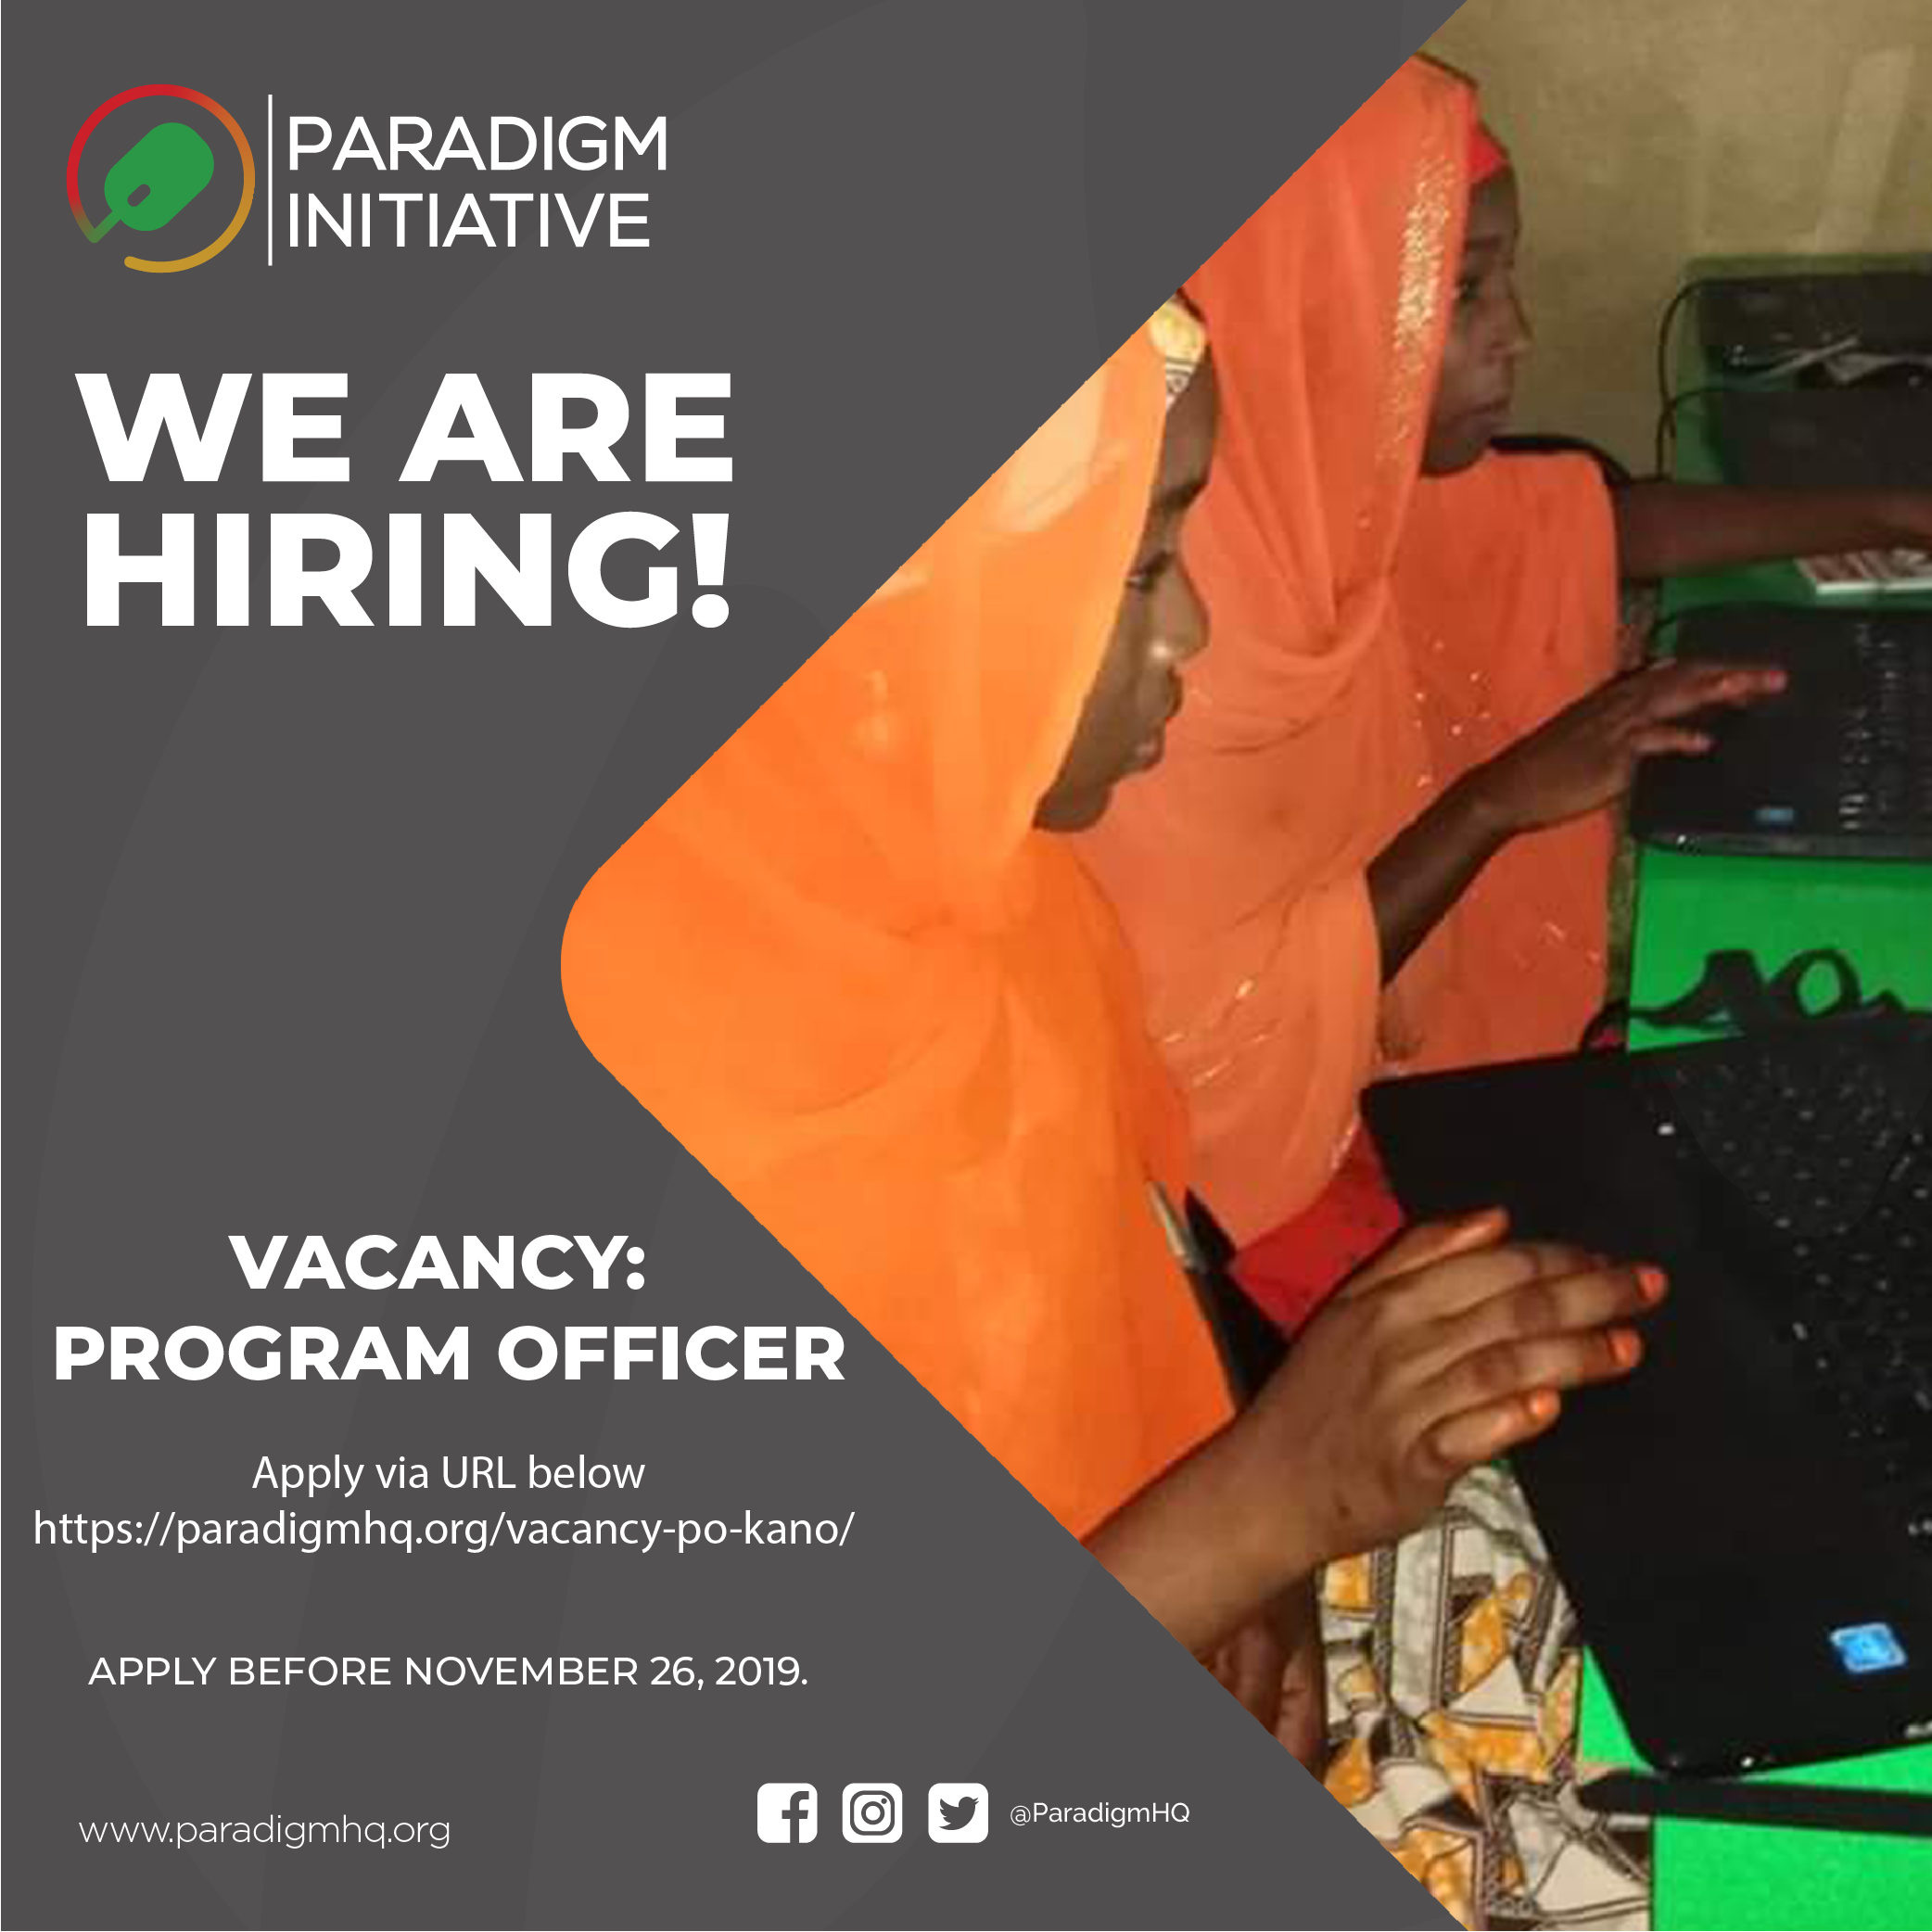 Vacancy: Program Officer (Kano, Nigeria)